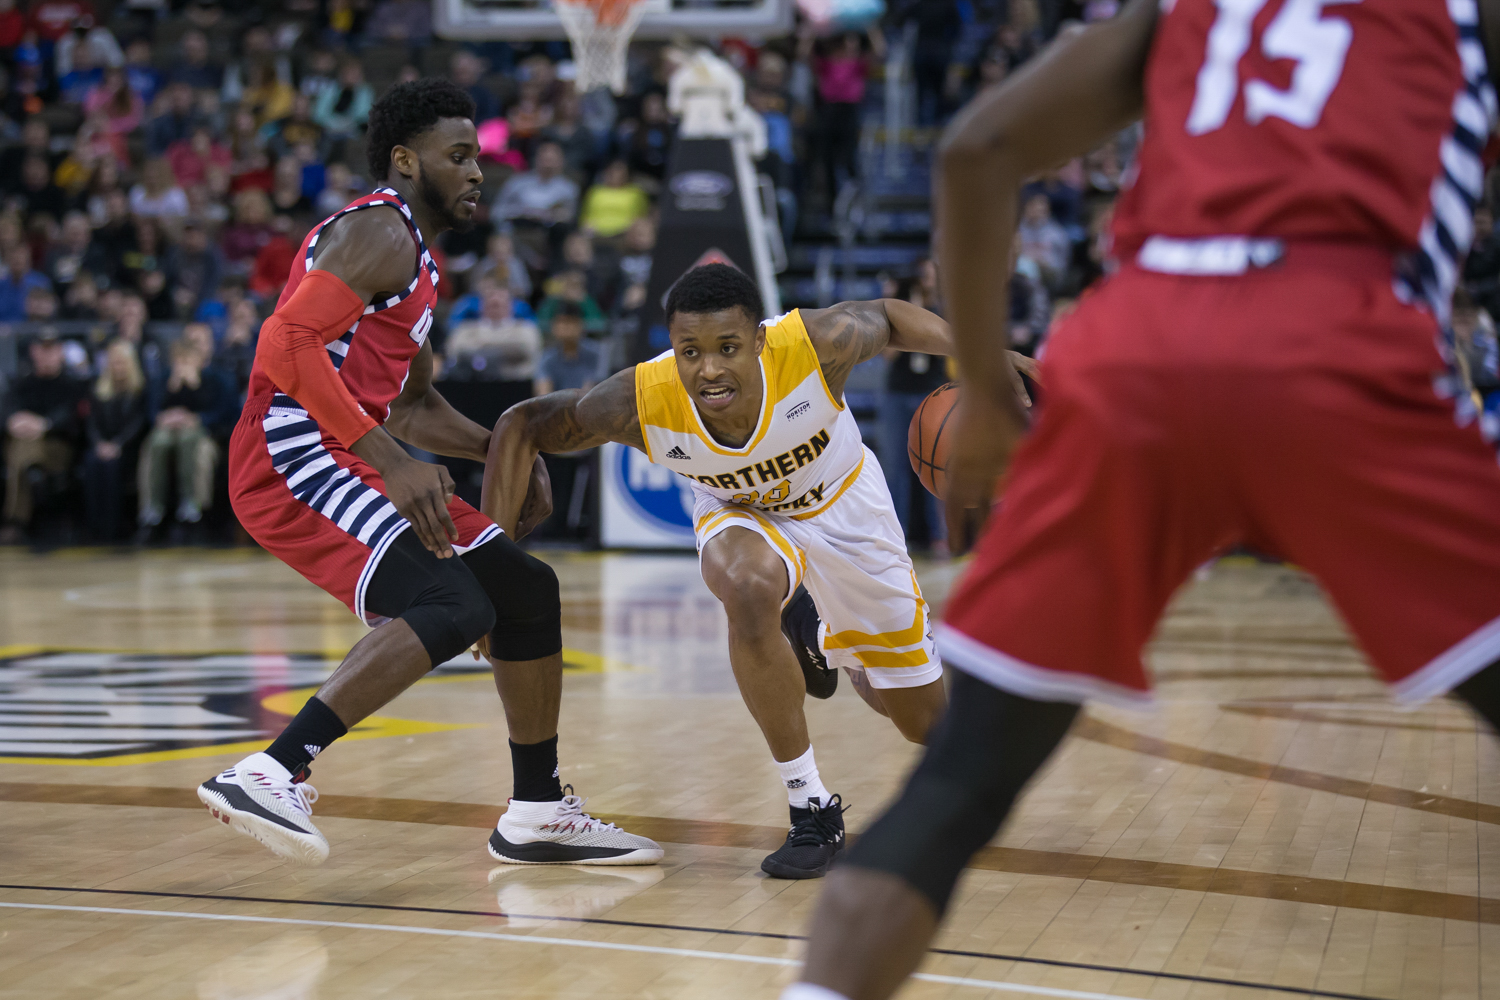 Lavone Holland II (30) fights toward the basket in the game against UIC.